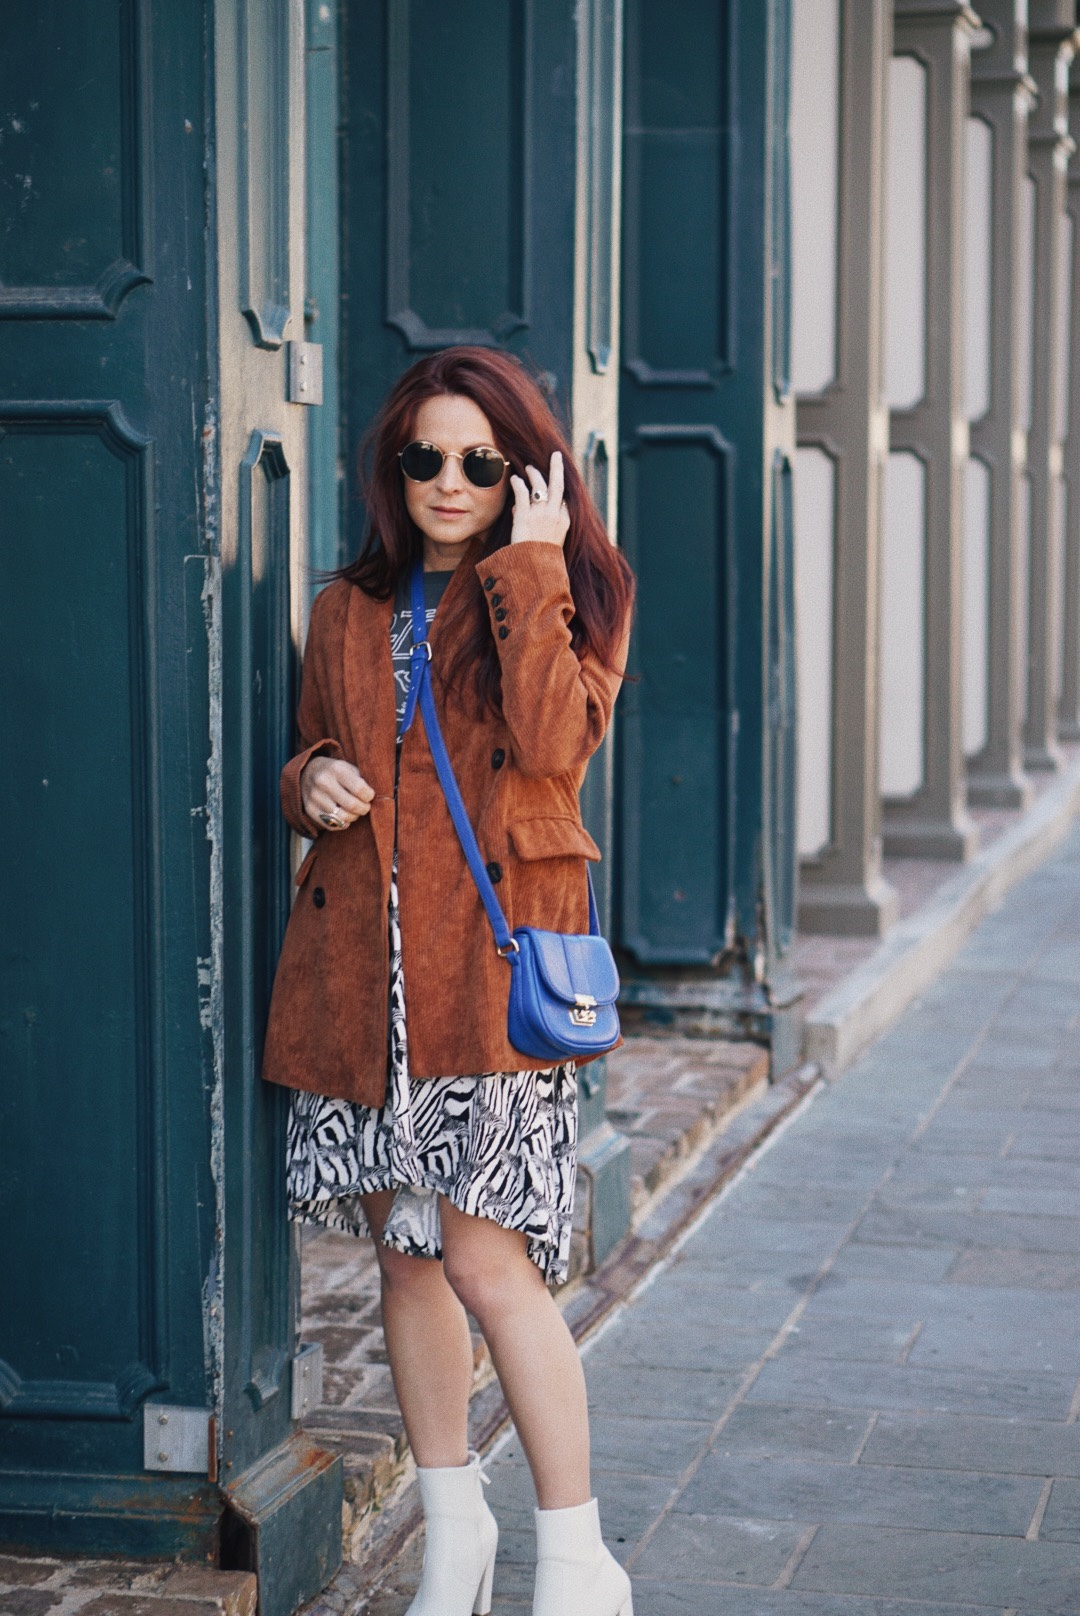 blue and brown outfit, animal print outfits, white boot outfits, blue bags